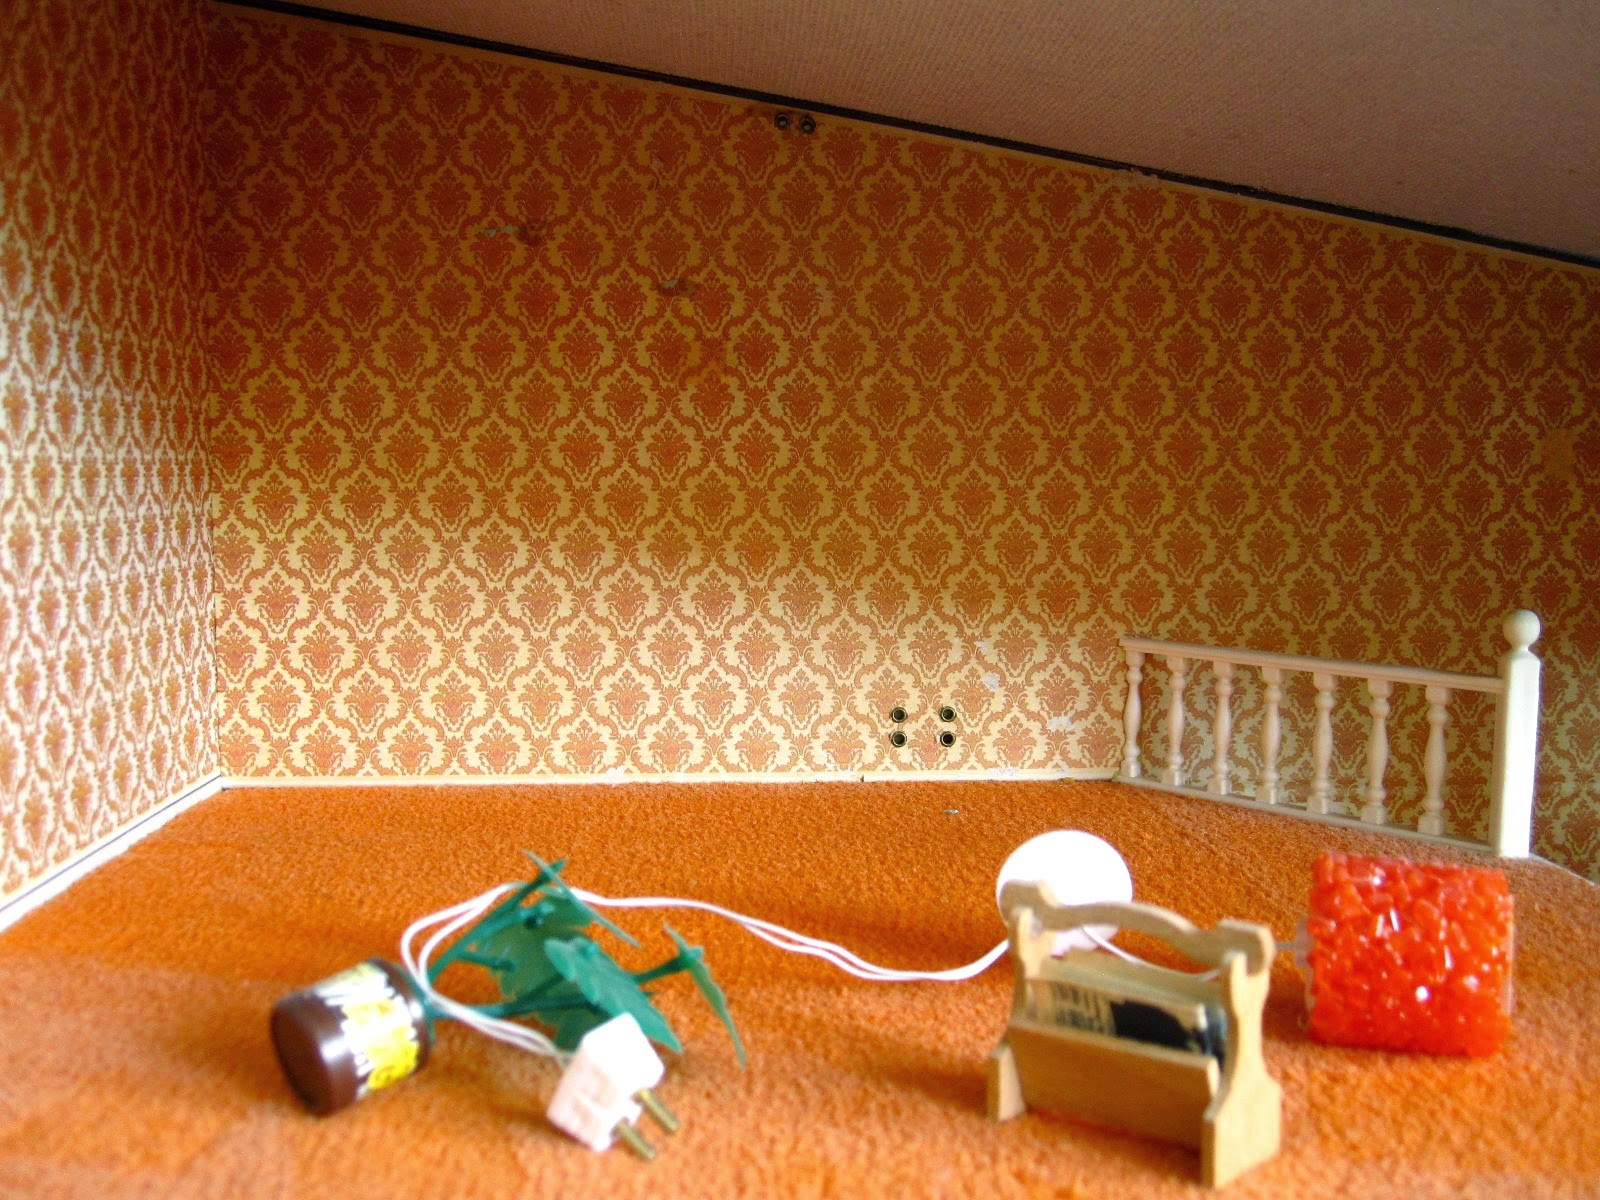 1975 Lundby dolls' house lounge, empty except for a pot plant, a magazine rack and an orange light.